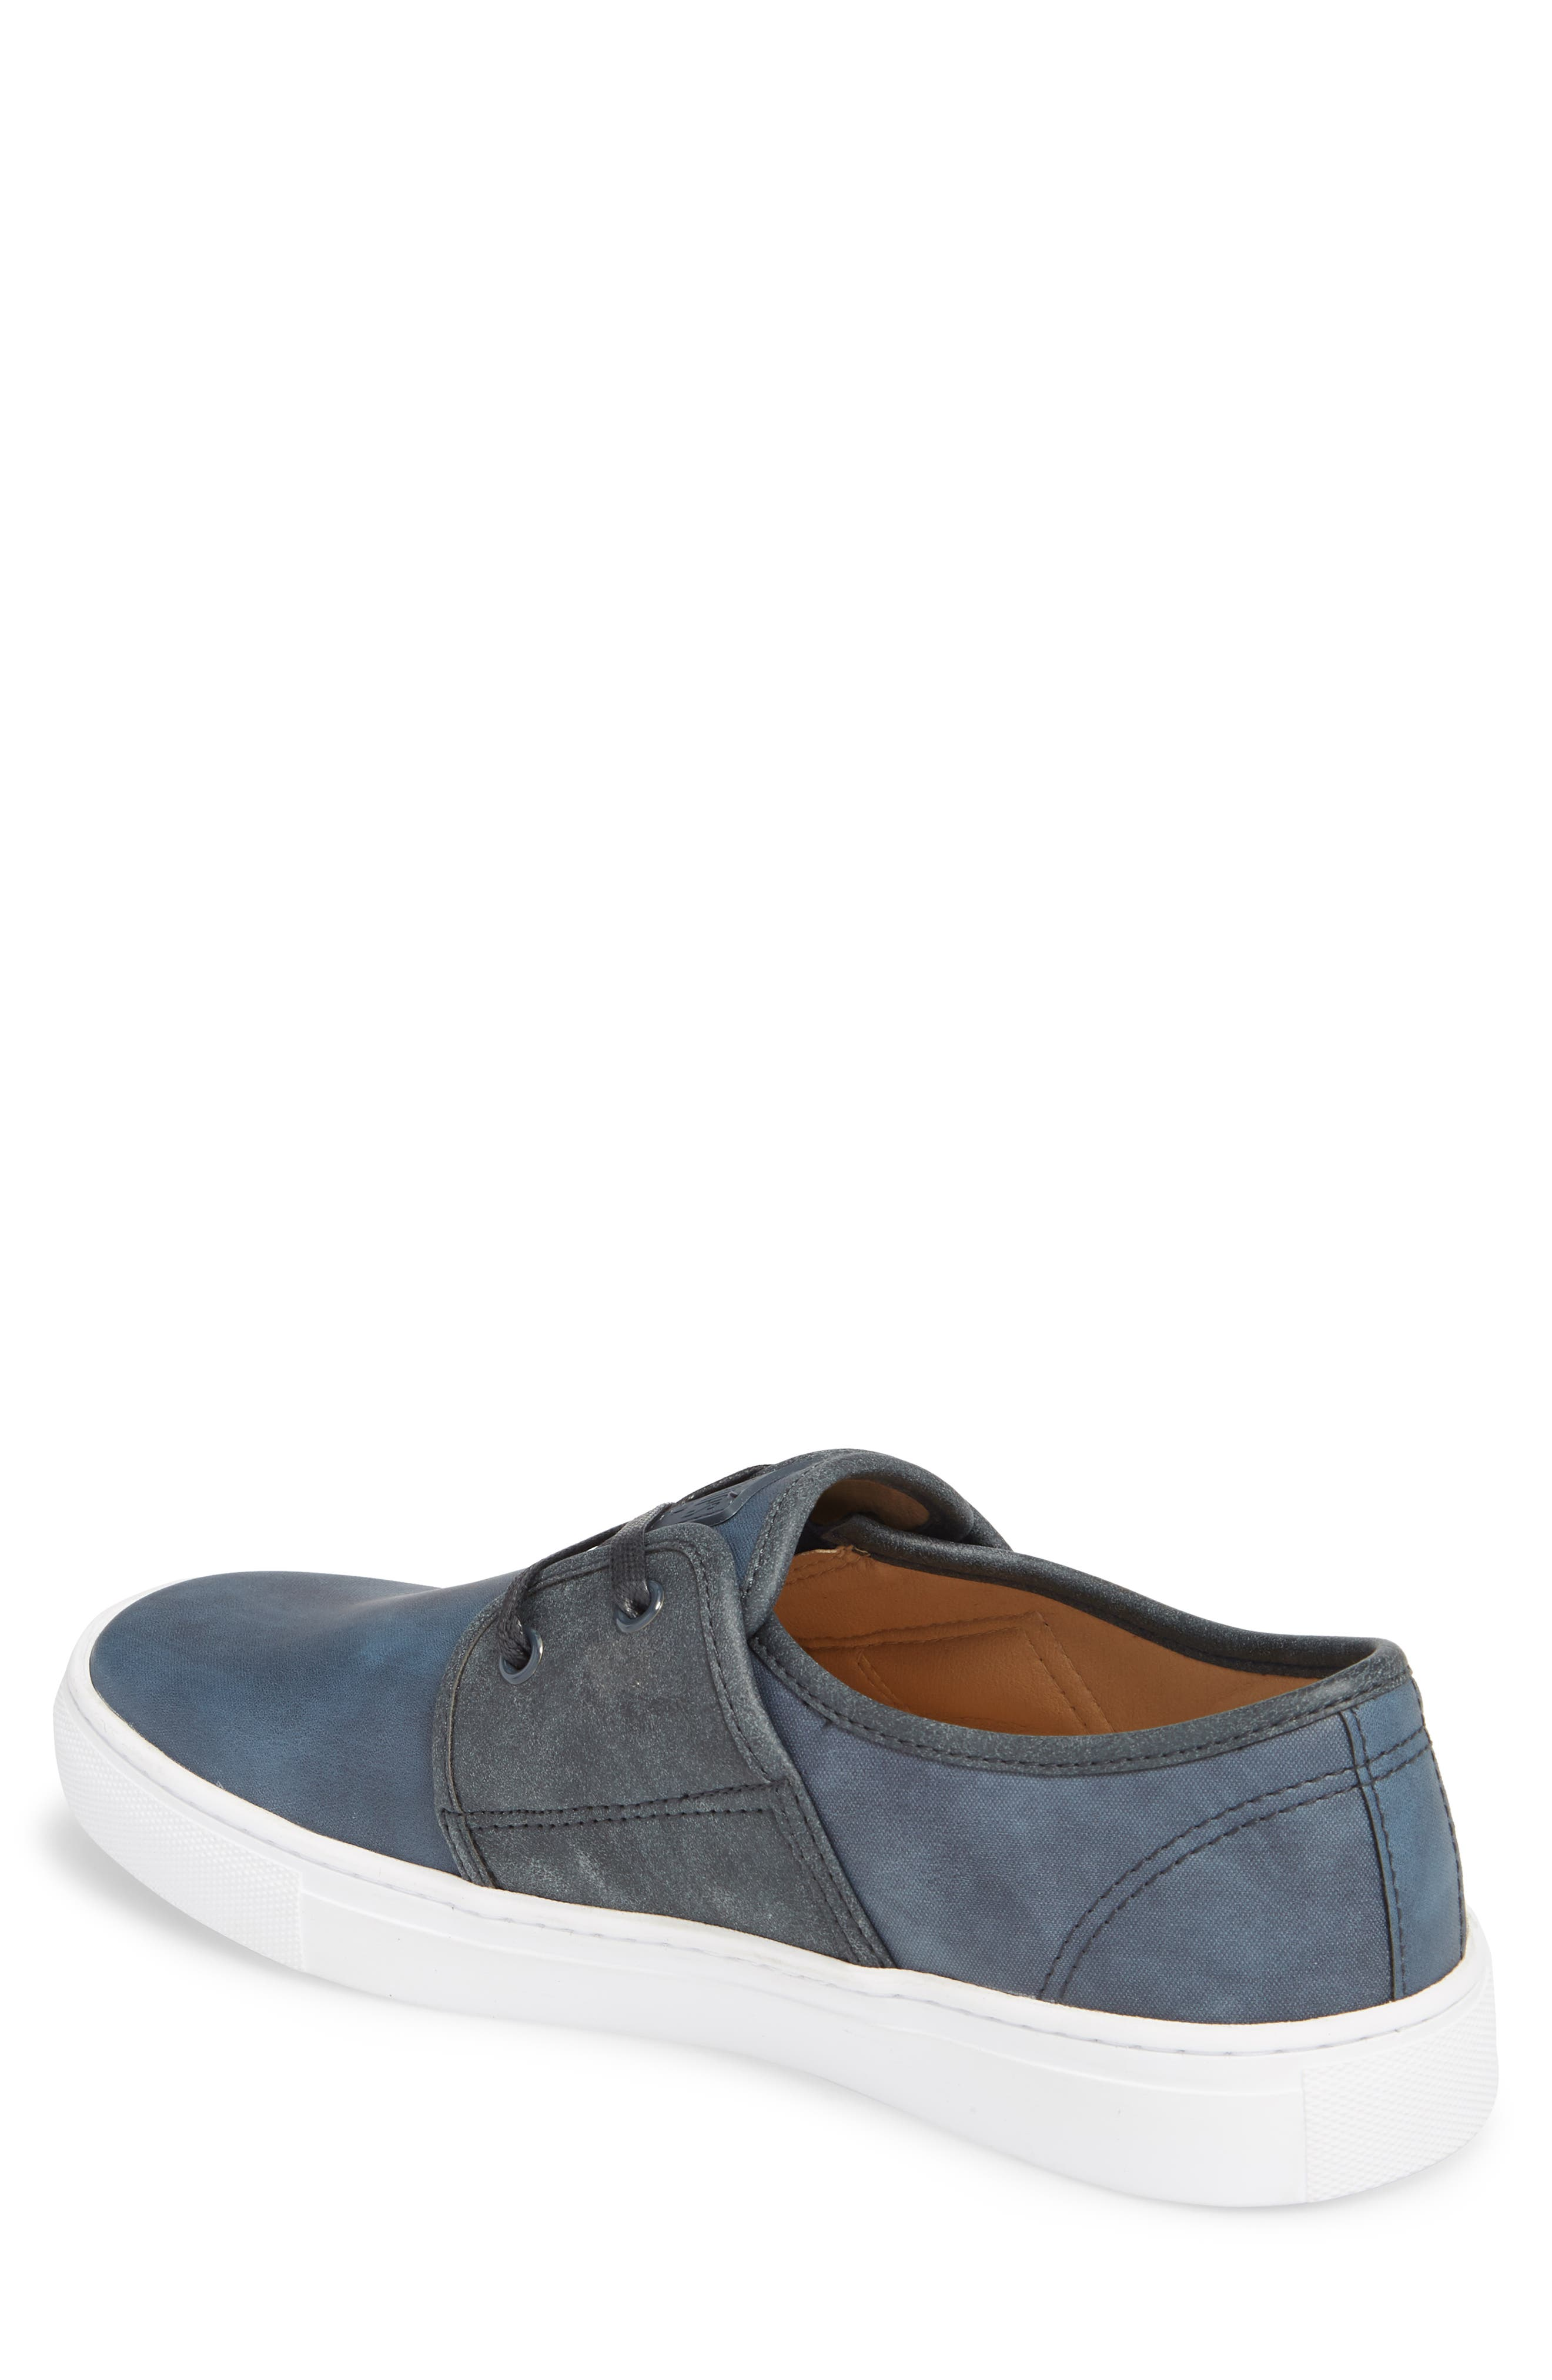 Toronto Low Top Sneaker,                             Alternate thumbnail 2, color,                             Navy Faux Suede